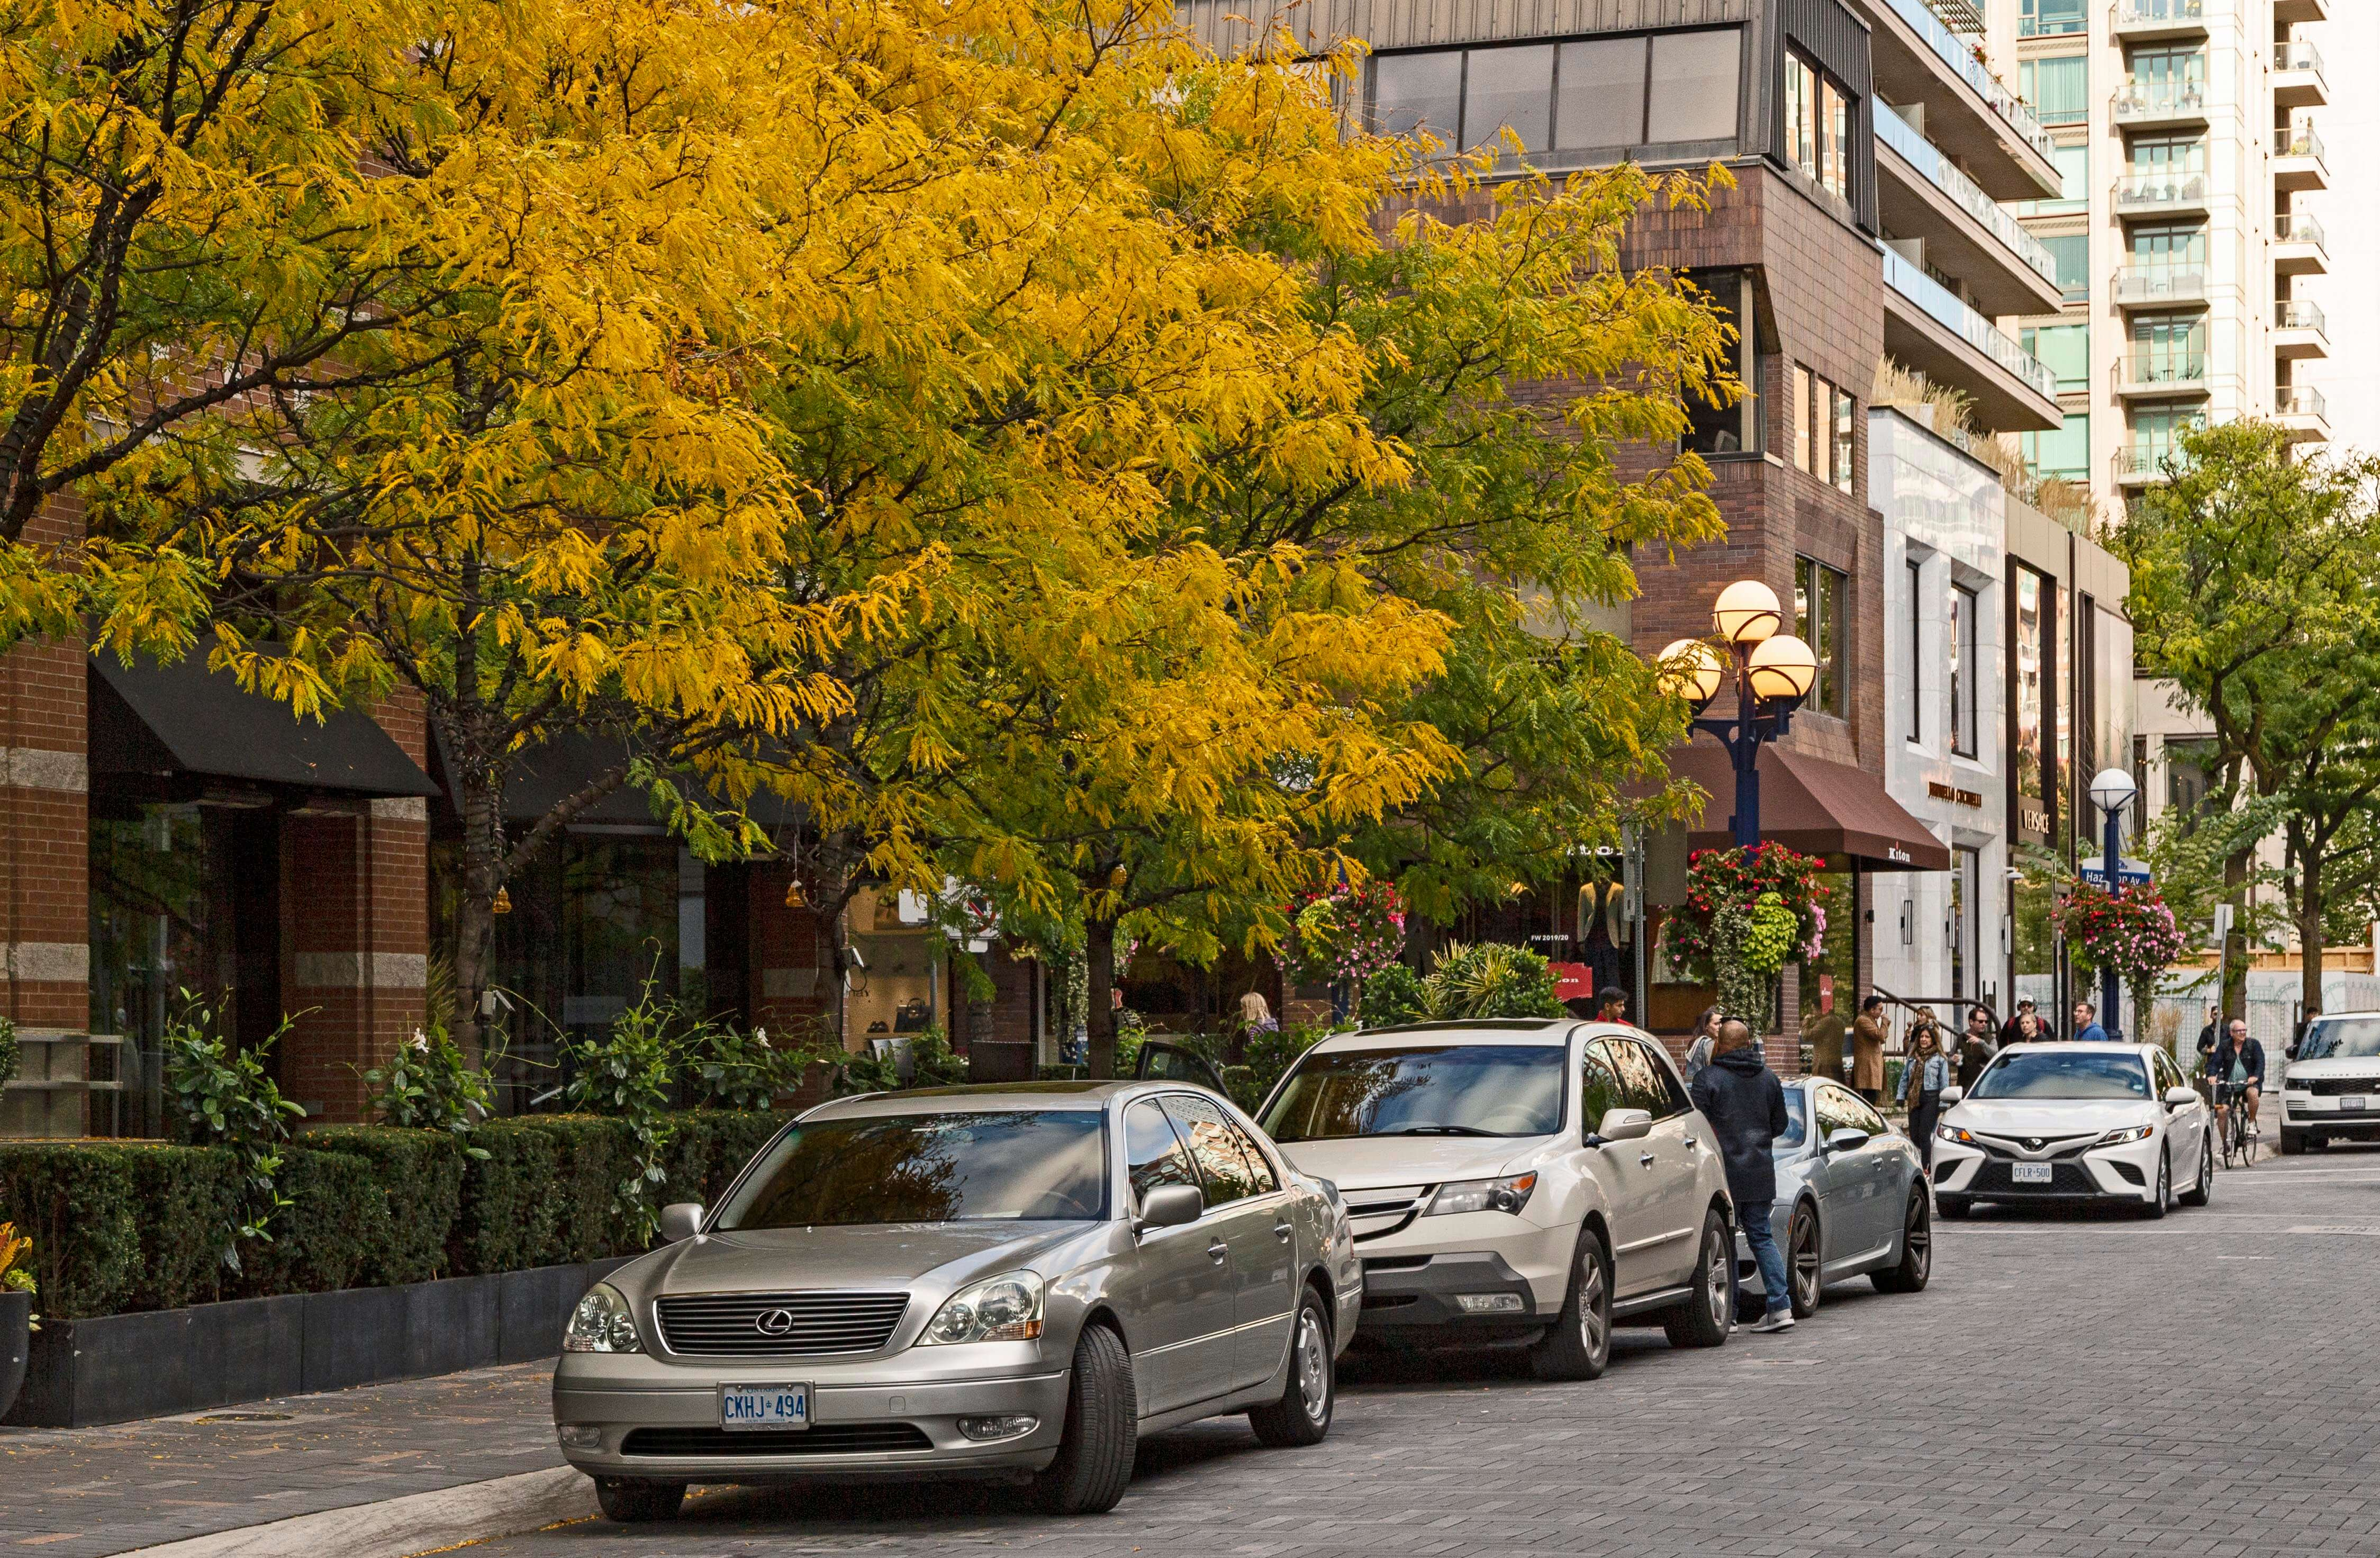 Exterior street scene with lowrise buildings, trees with yellow leaves, and cars.